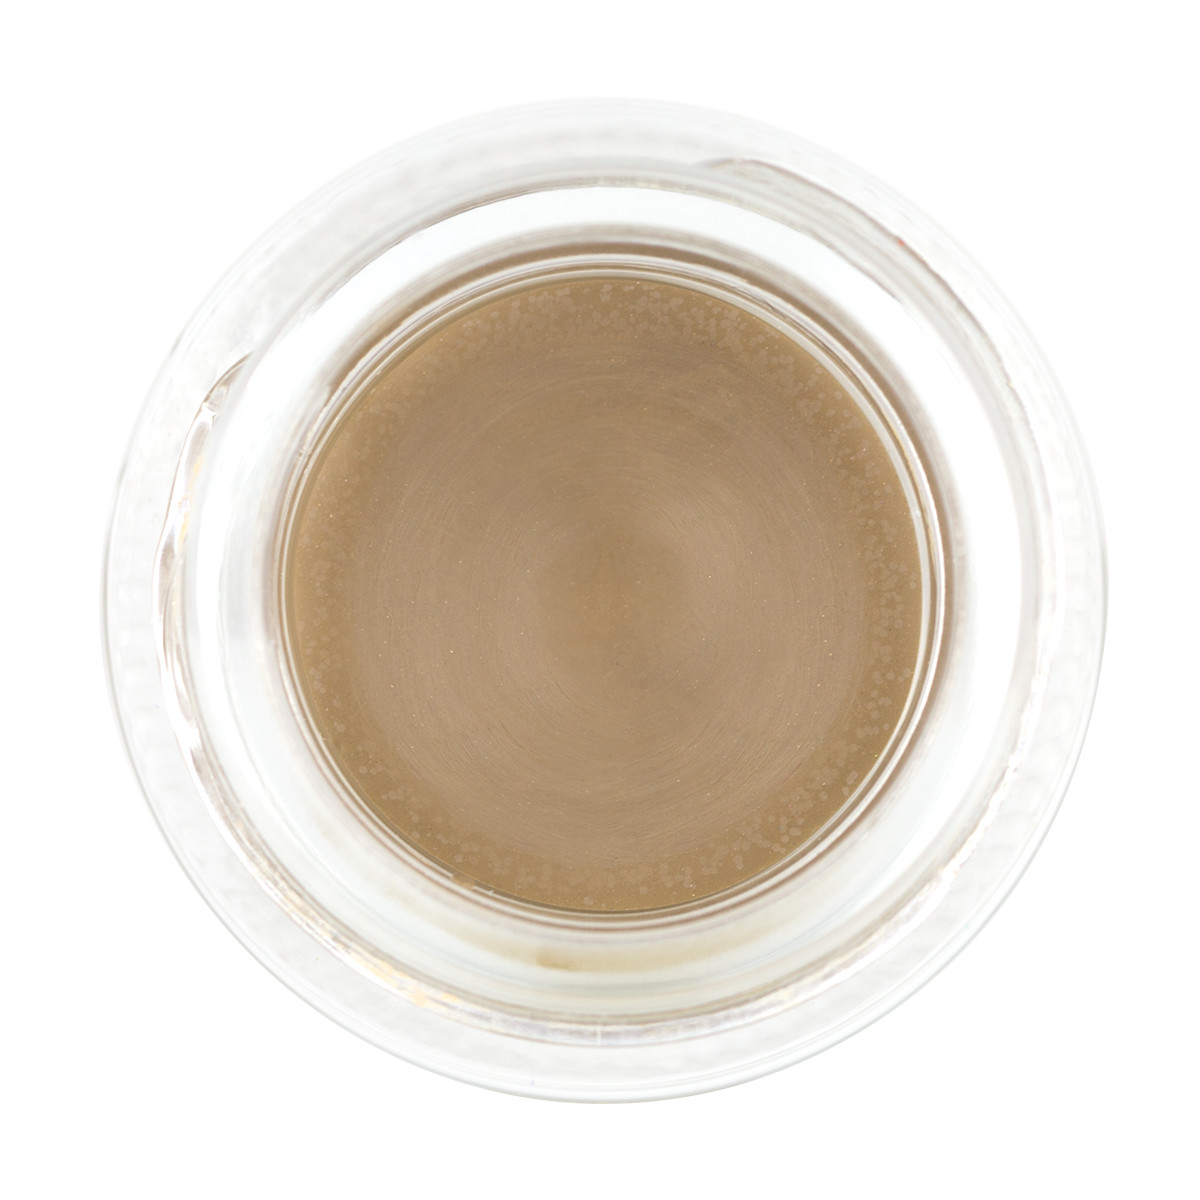 Billion Dollar Brows Brow Butter Pomade Kit in Blonde